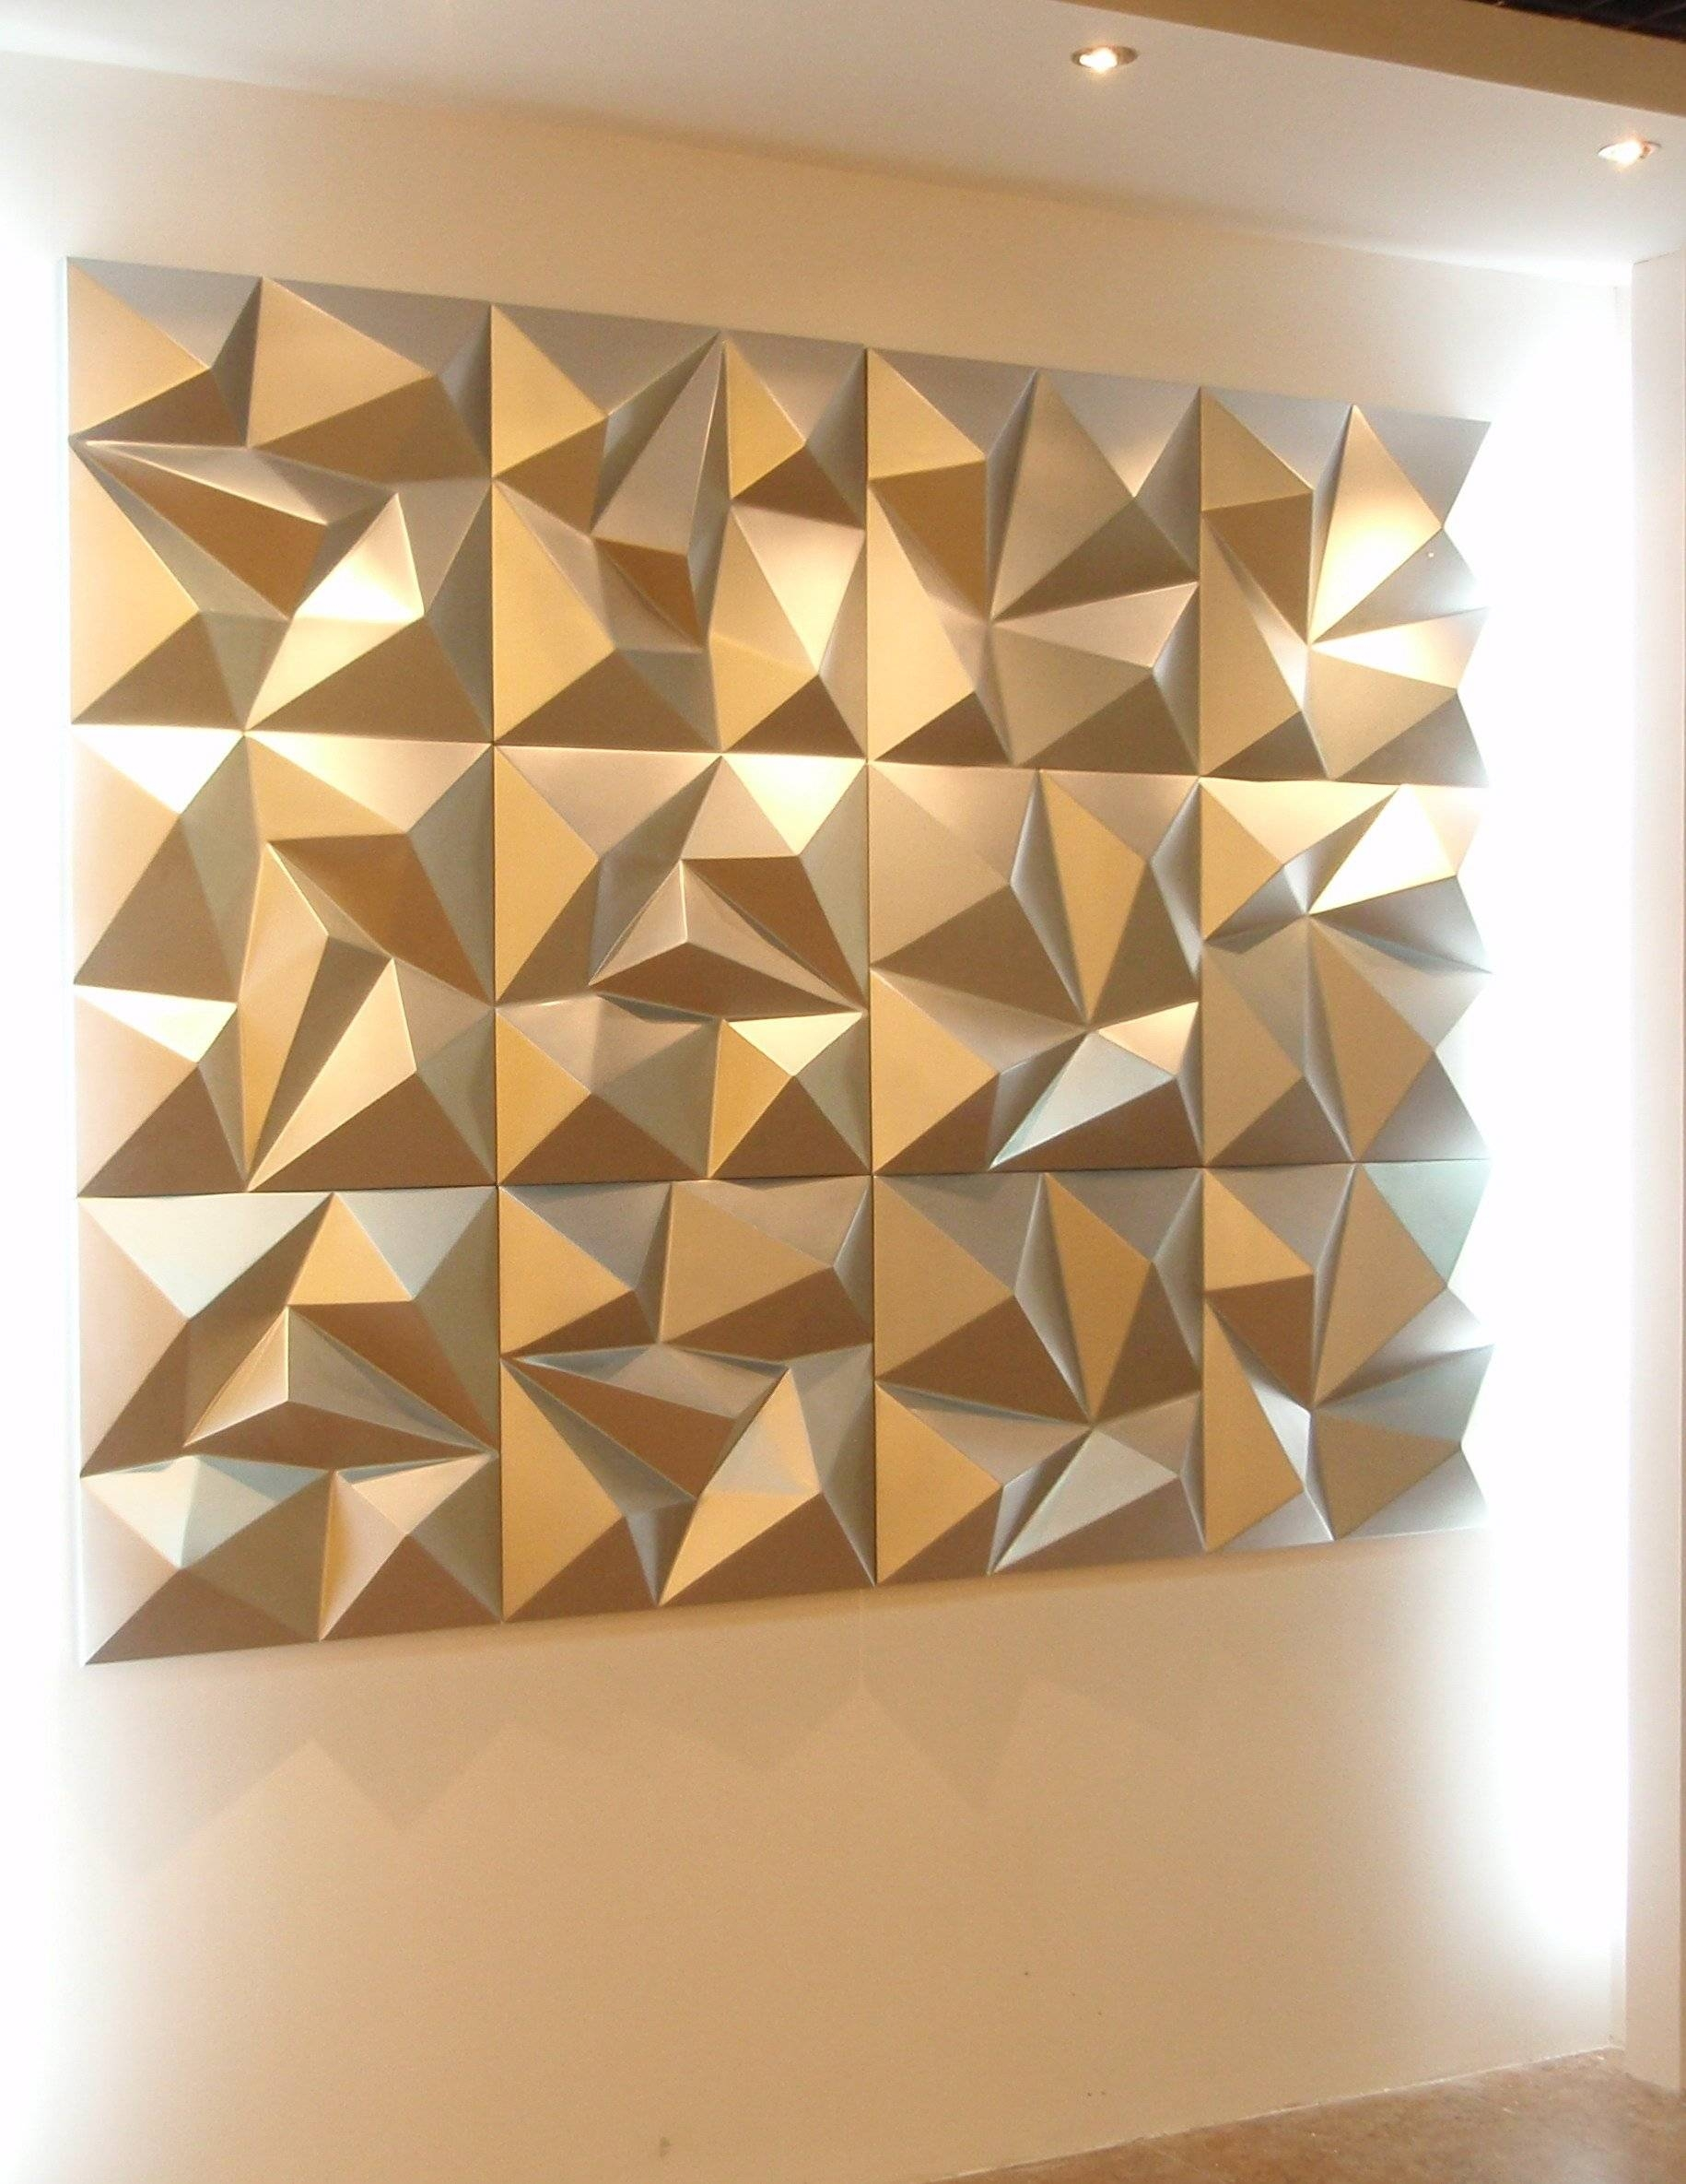 3d Wall Decor Panels – Home Design Throughout Most Current 3d Modern Wall Art (View 10 of 20)